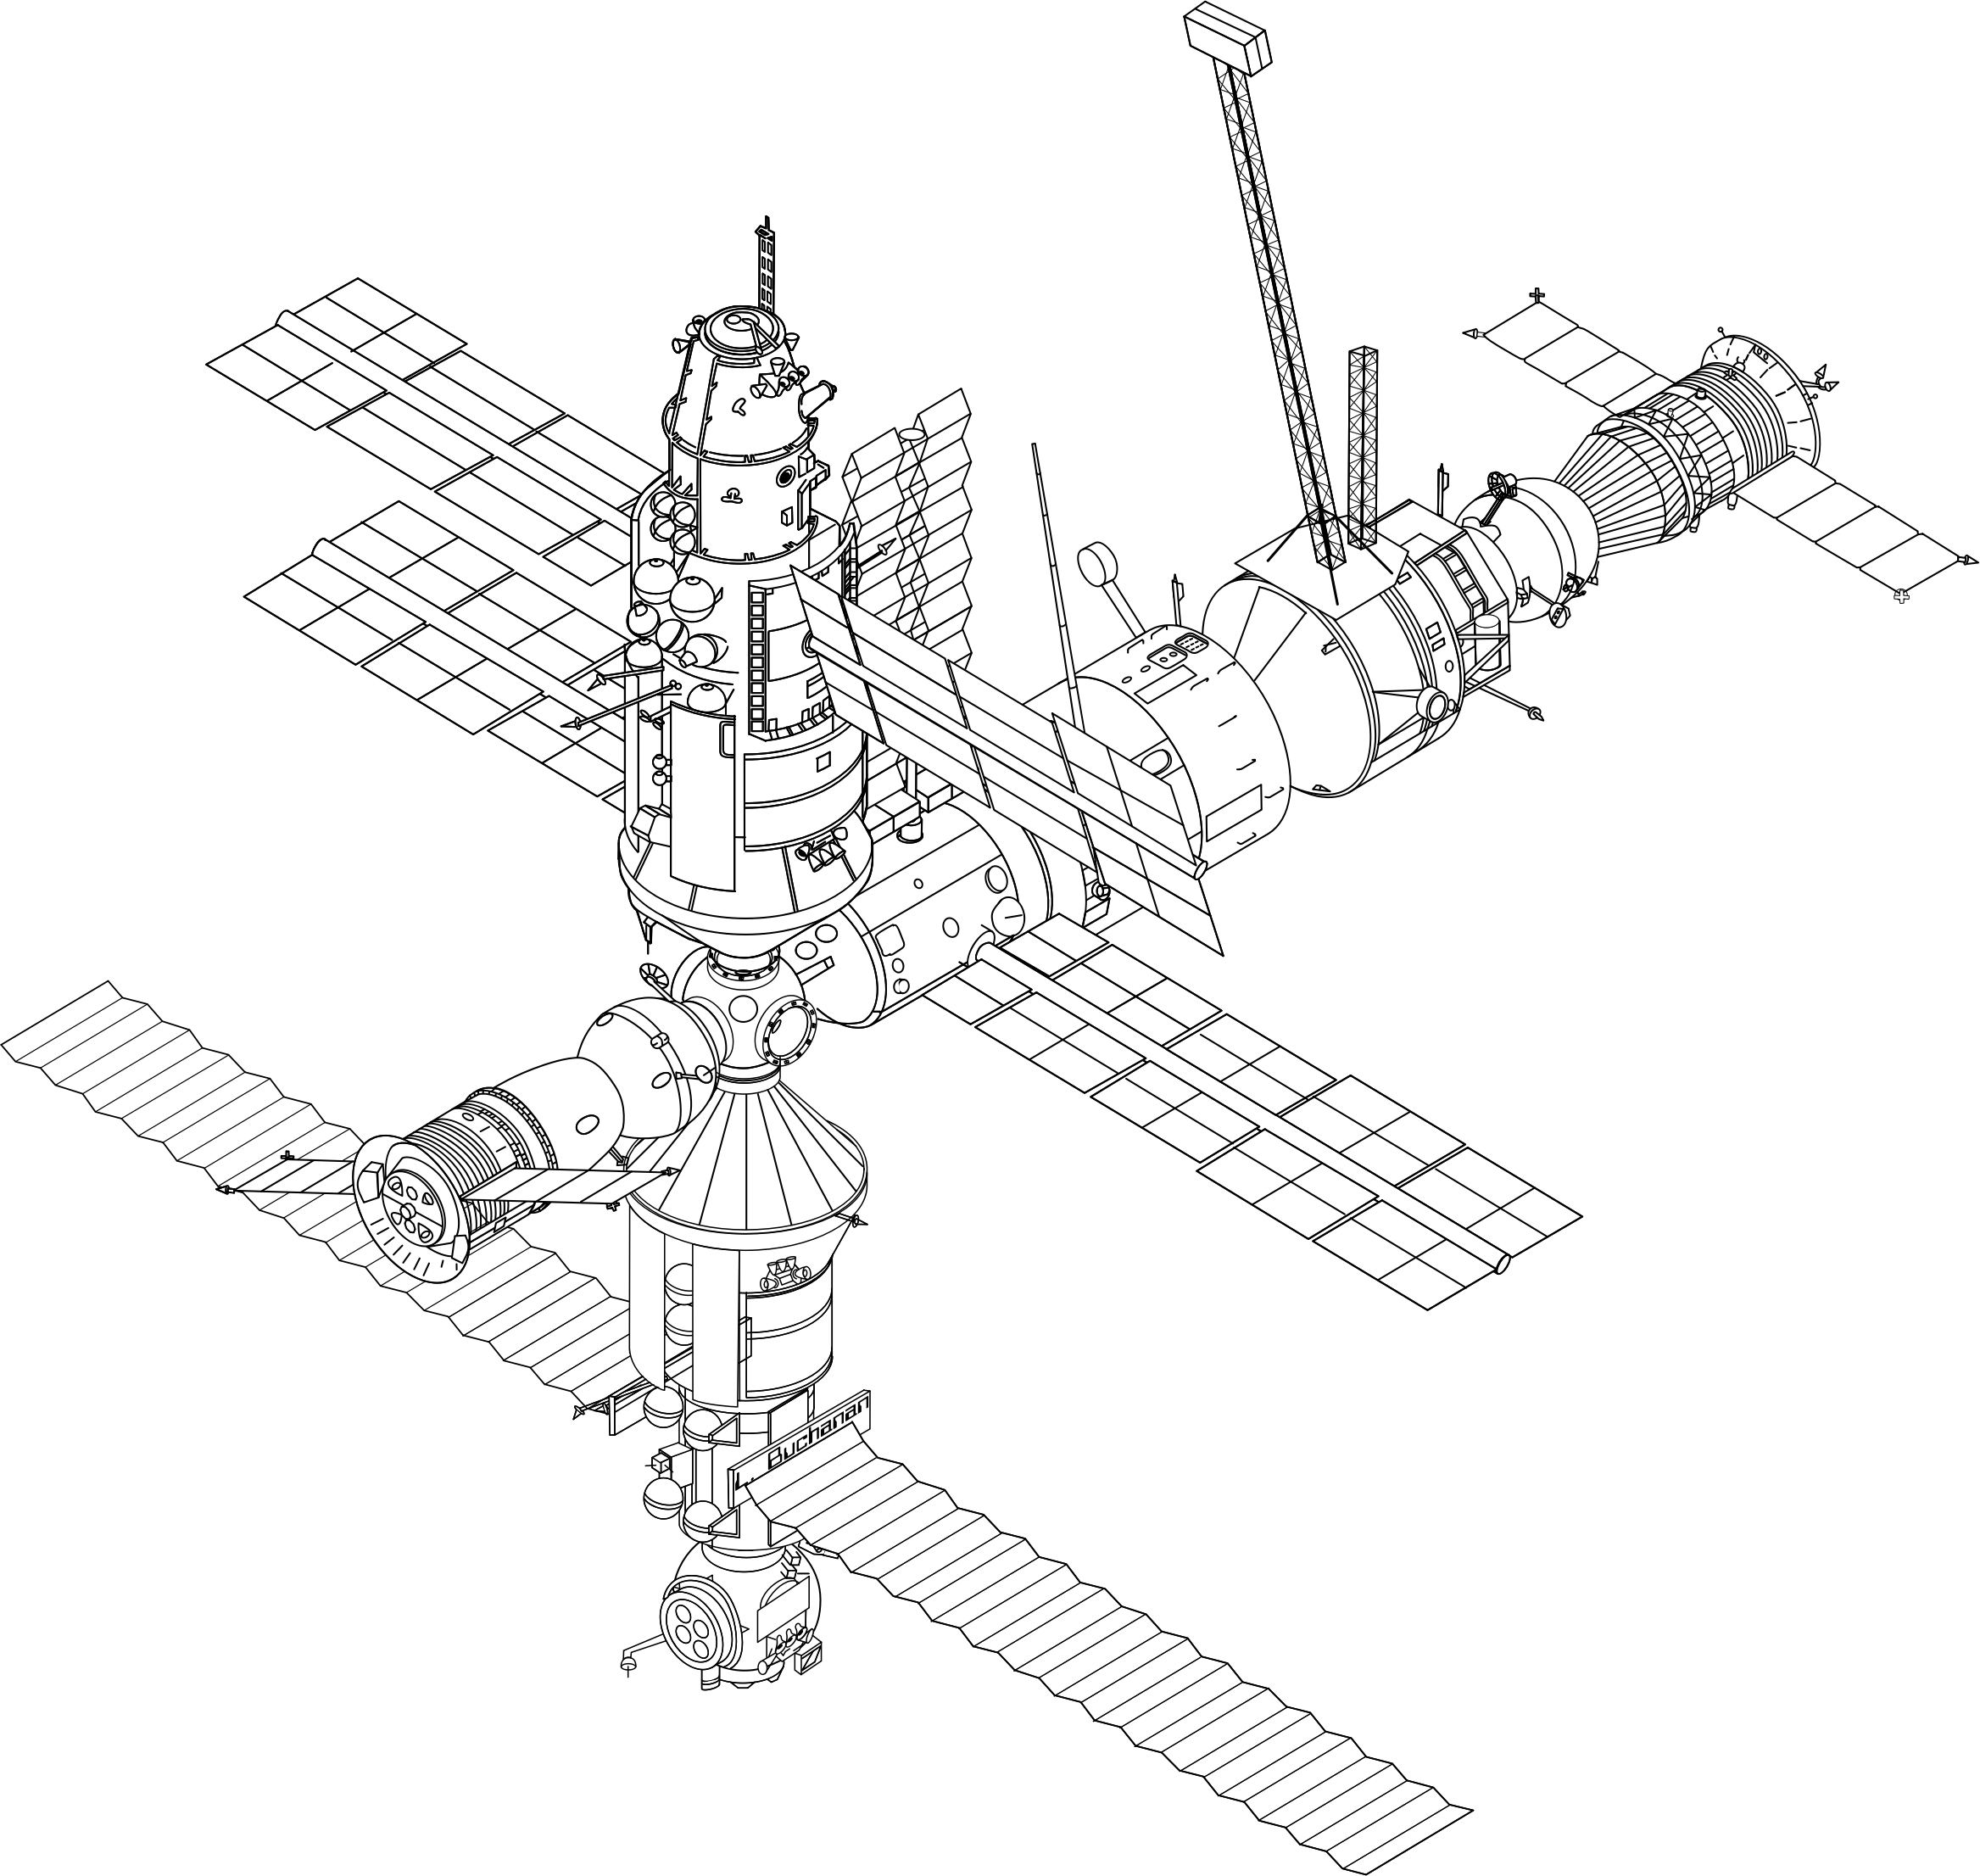 MIR Space Station (1994) by rygle